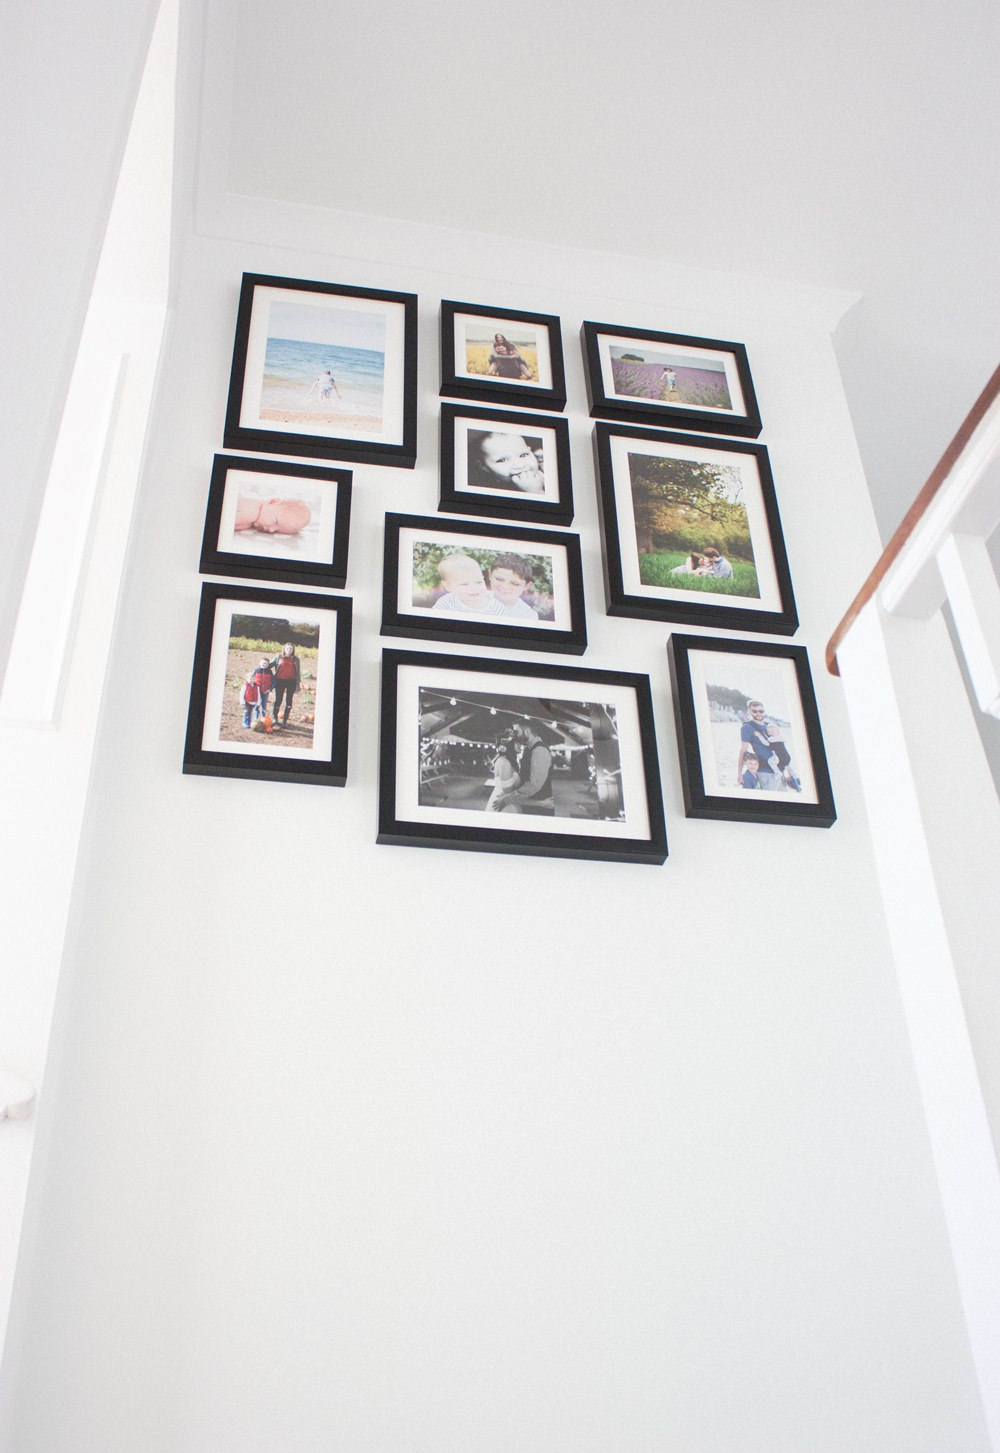 Wedding Photos Print Gallery Wall